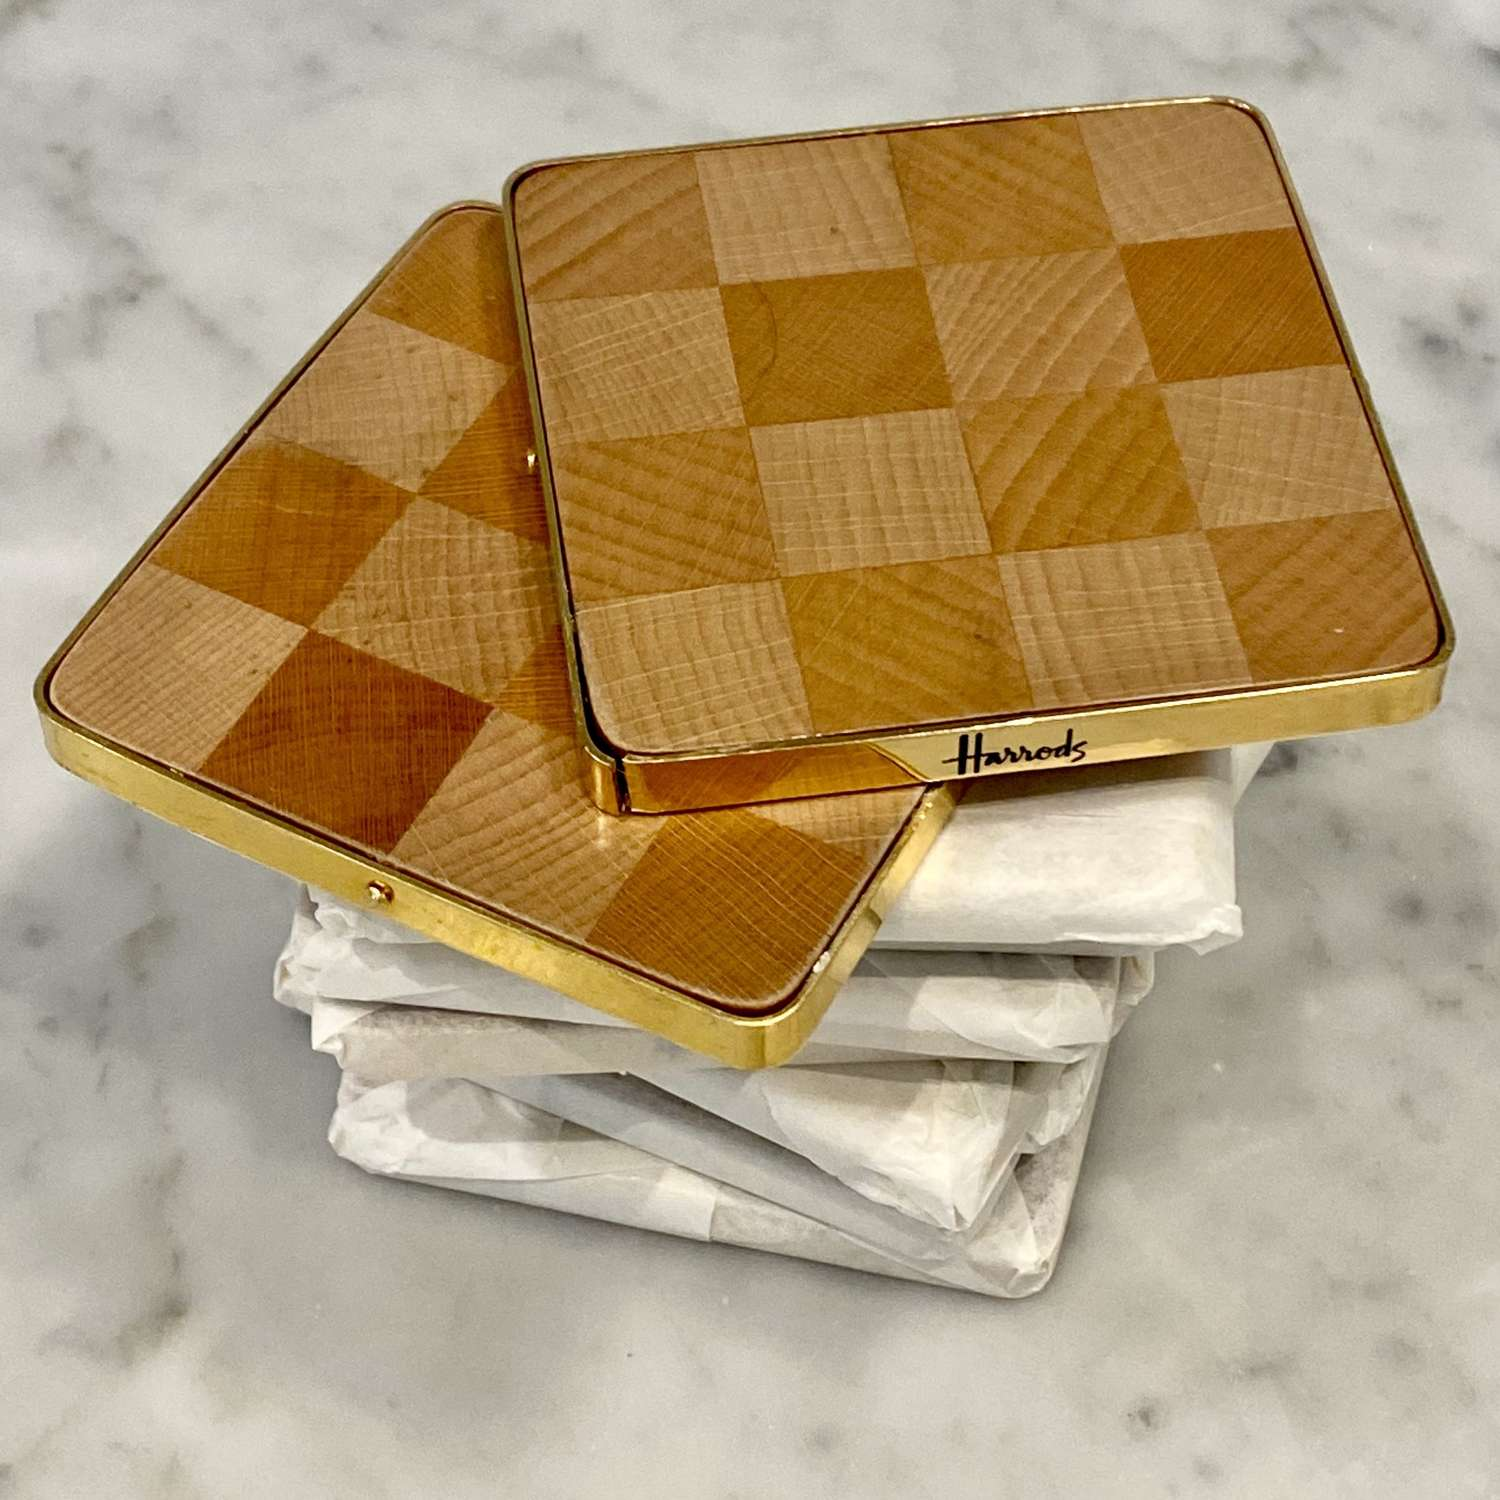 1970s wooden and gold glass coaster set by Harrods